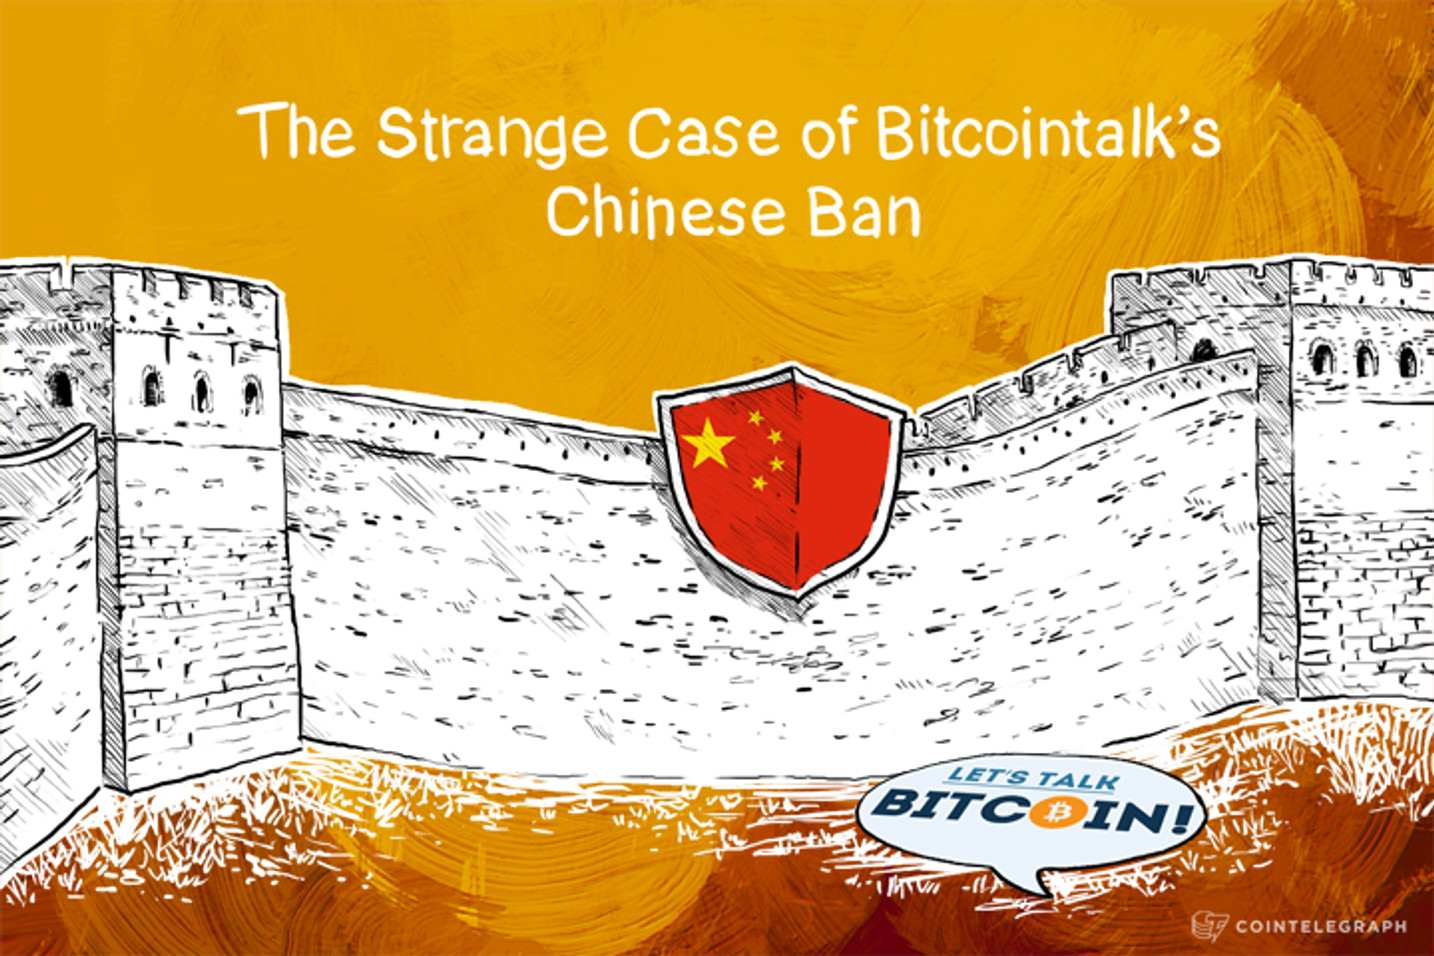 The Strange Case of Bitcointalk's Chinese Ban